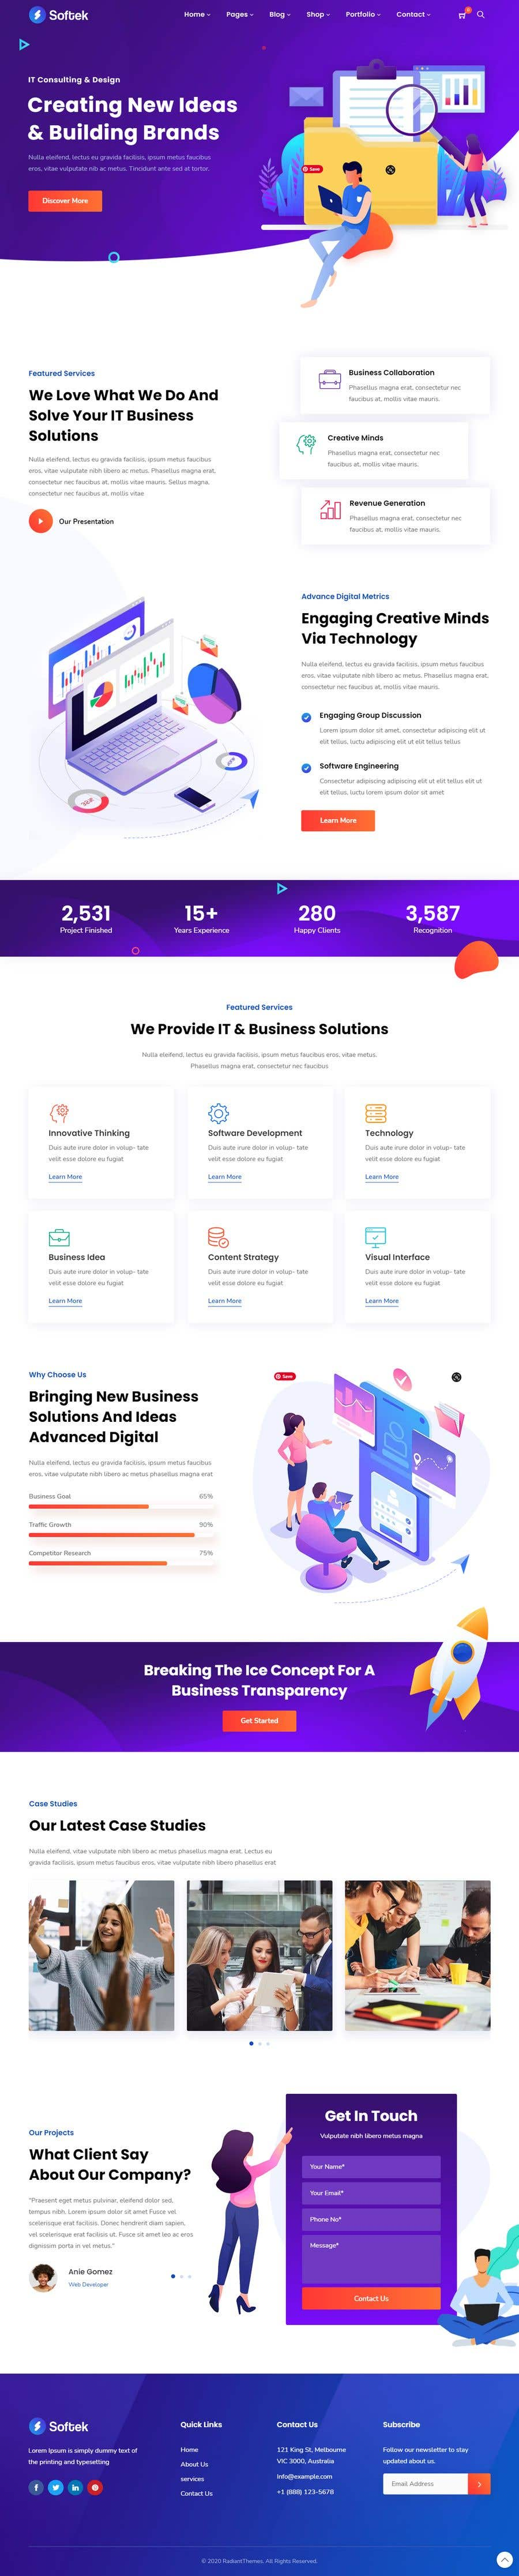 Bài tham dự cuộc thi #                                        58                                      cho                                         I need a Landing Page Website for Small Business Stores